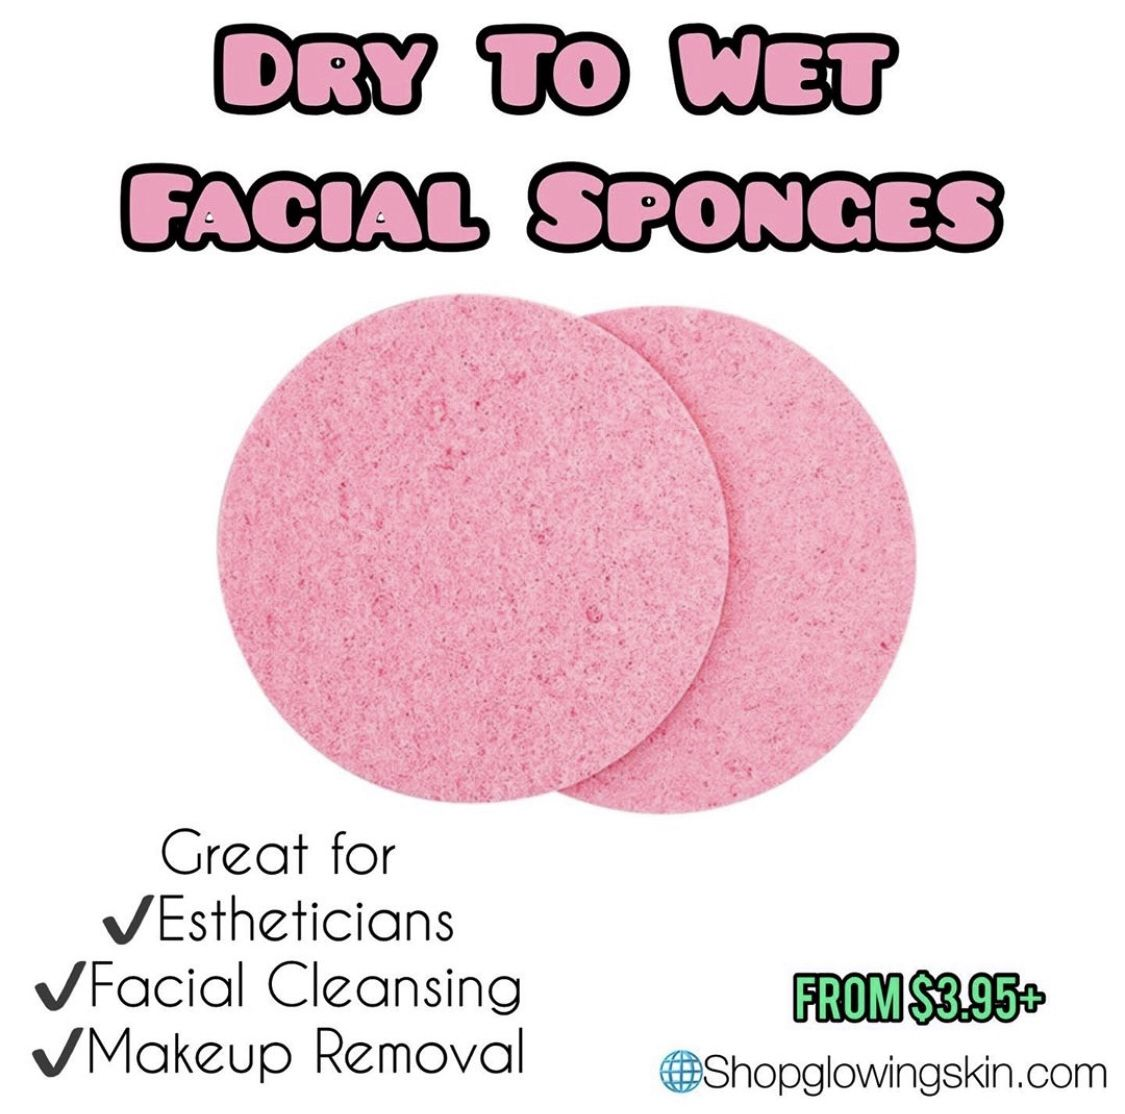 Compressed Face Sponges (65,000) PACK Makeup remover